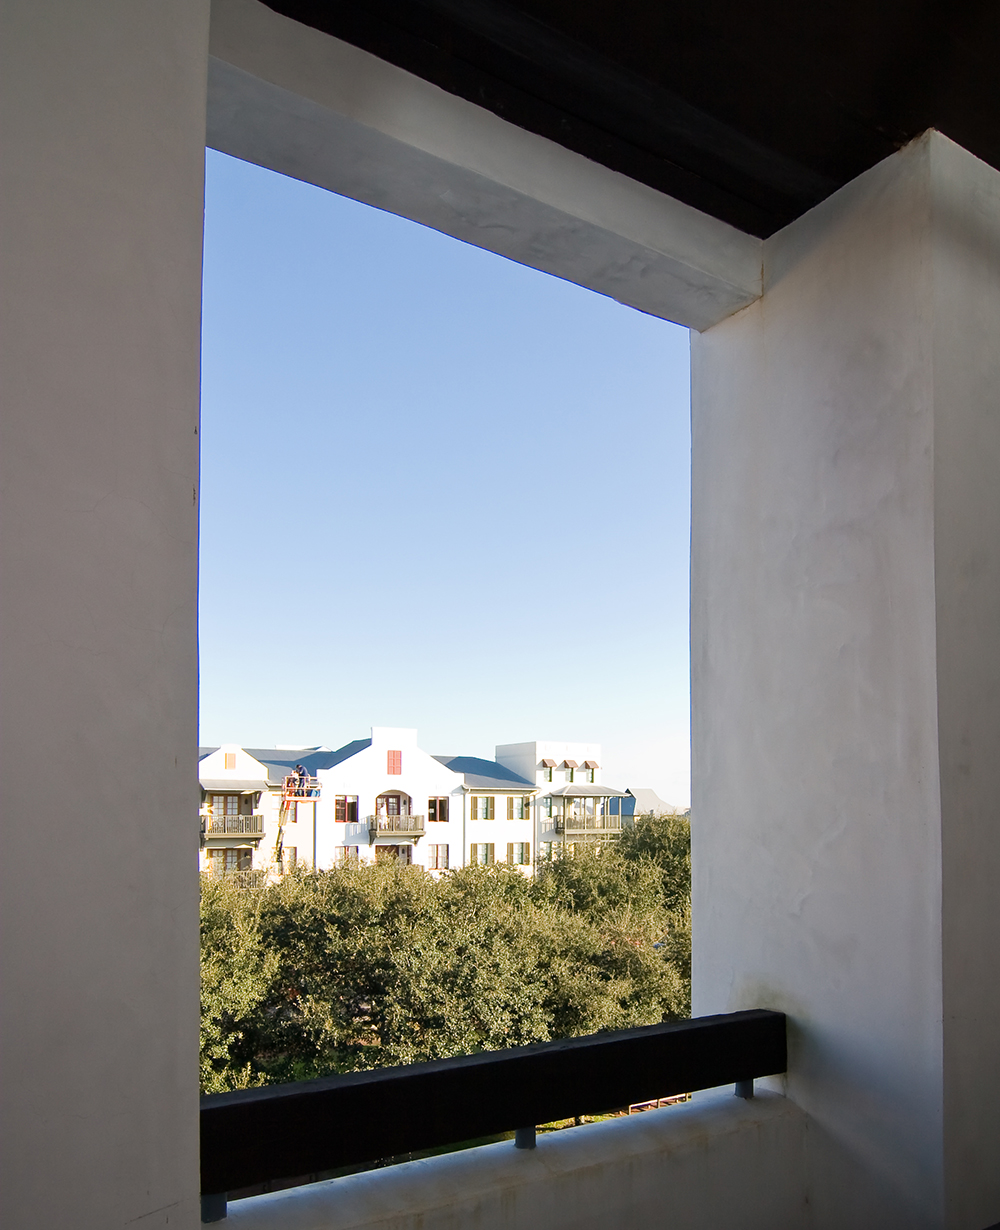 McNamara-Rosemary Beach-Tabby Lofts-Exterior-Balcony